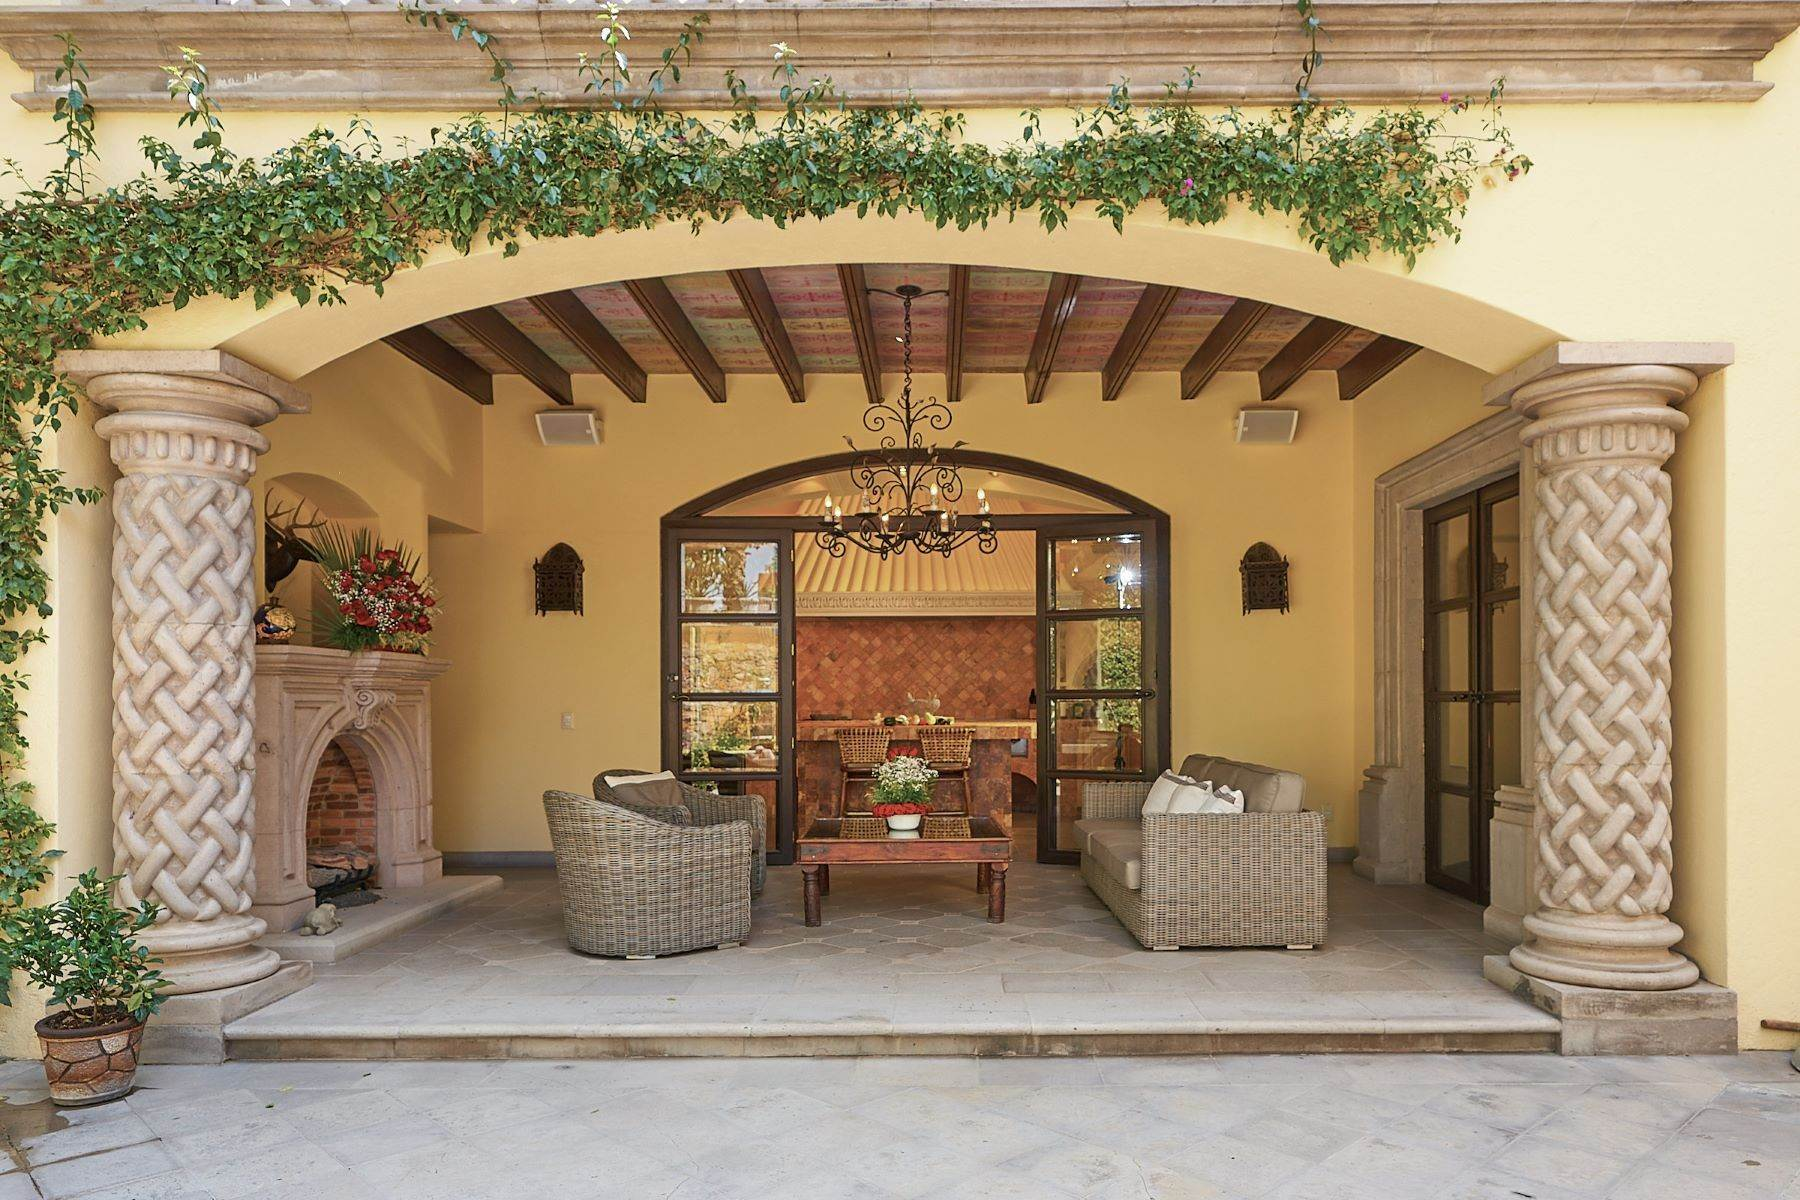 13. Single Family Homes for Sale at Casa Ixchel Privada de Pila Seca 6 San Miguel De Allende, Guanajuato 37700 Mexico